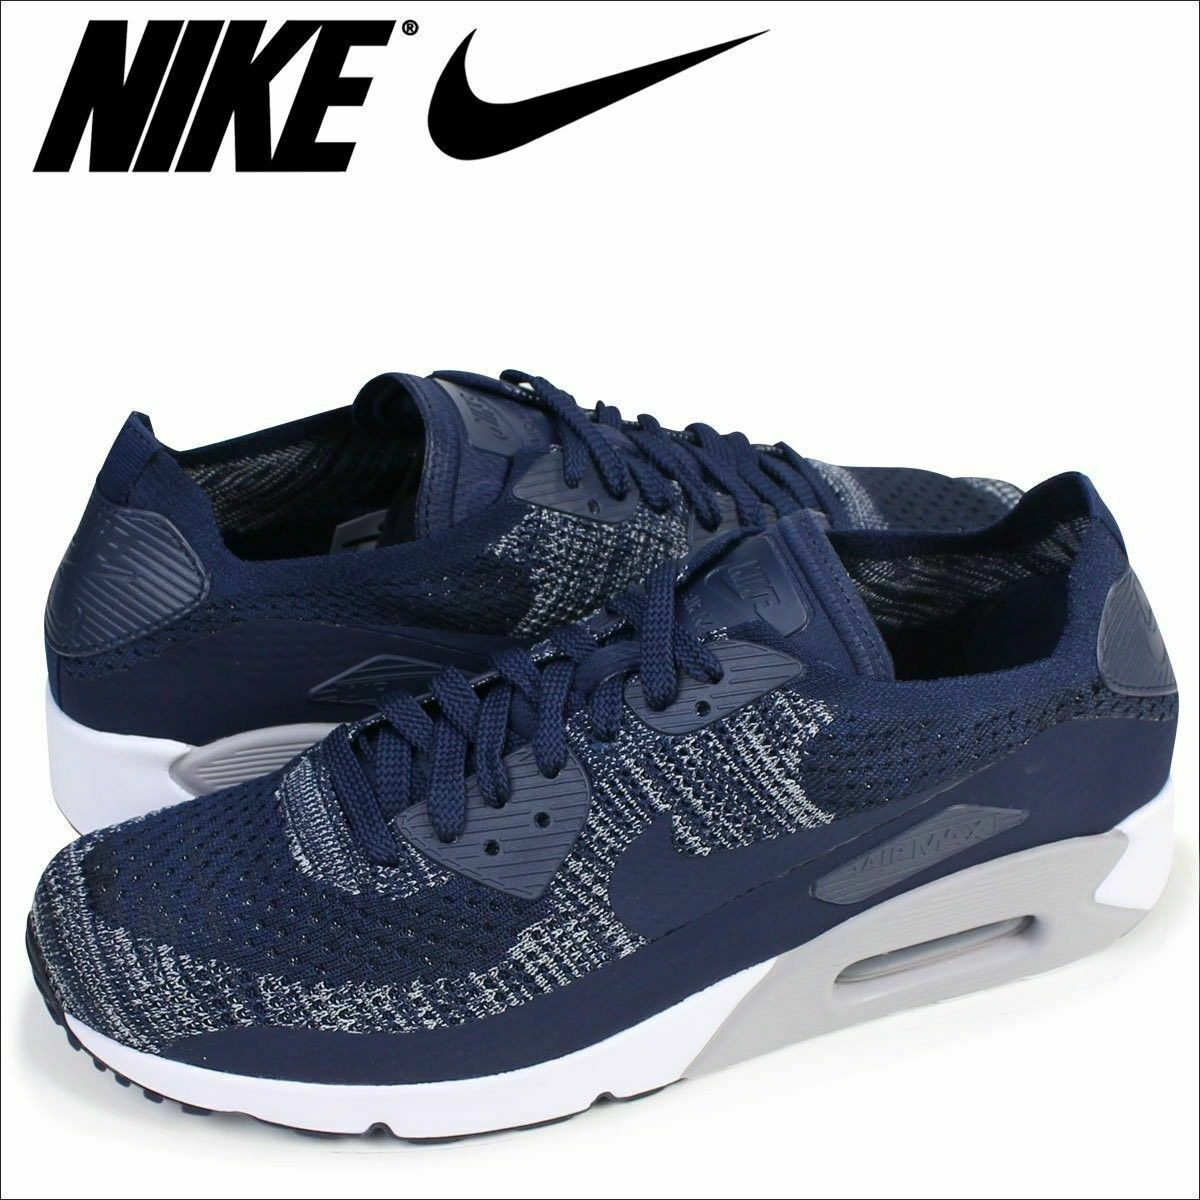 pretty nice 452f9 765a3 Details about Nike Air Max 90 Ultra 2.0 Flyknit Mens Sneakers Running Shoes  875943 401 Sz 12.5